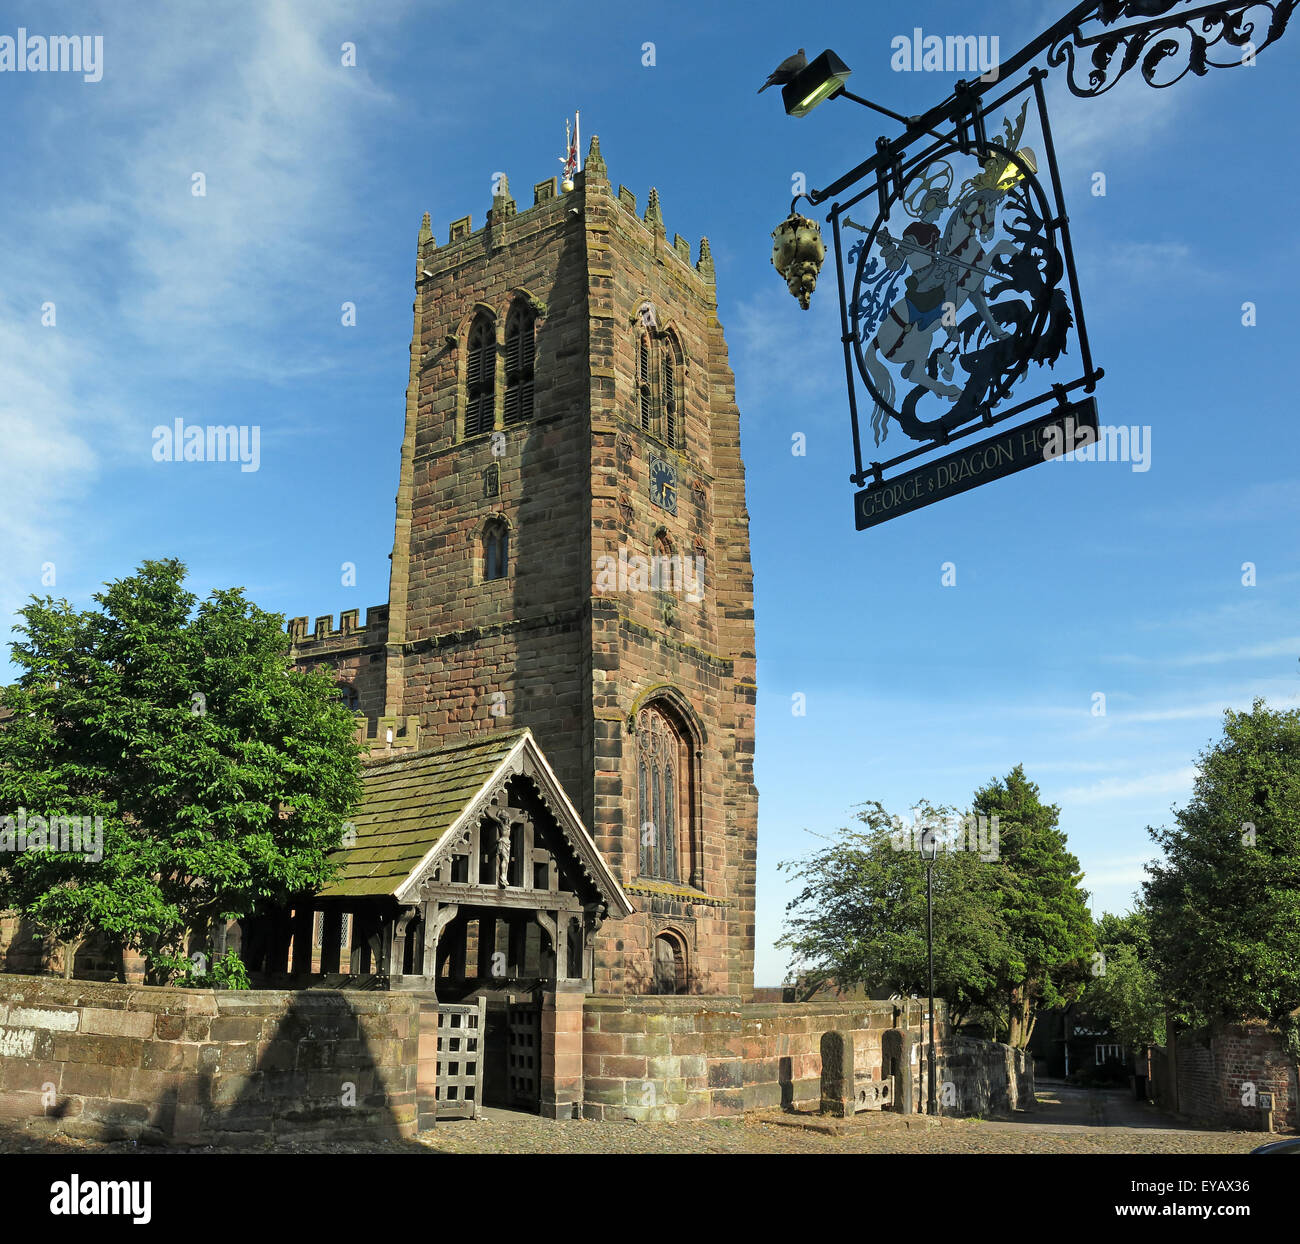 Great Budworth Pub and Parish Church,Northwich,Cheshire,England,UK - Stock Image